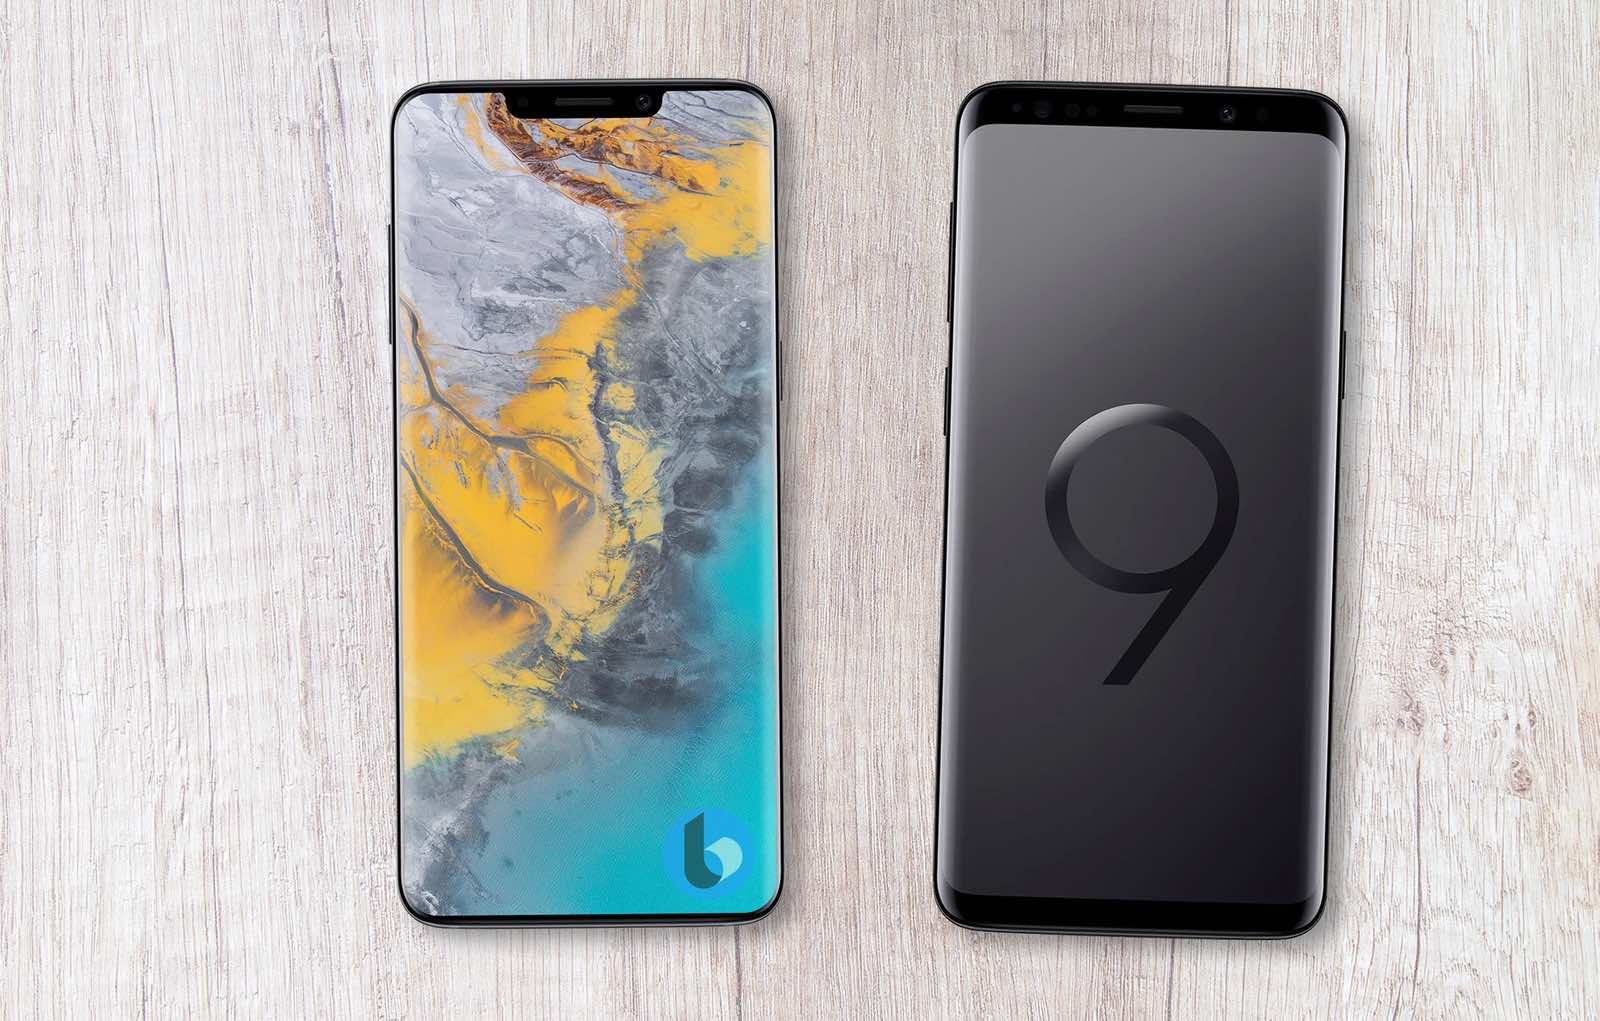 Samsung Galaxy S10 like iPhone X Geskin concept 4